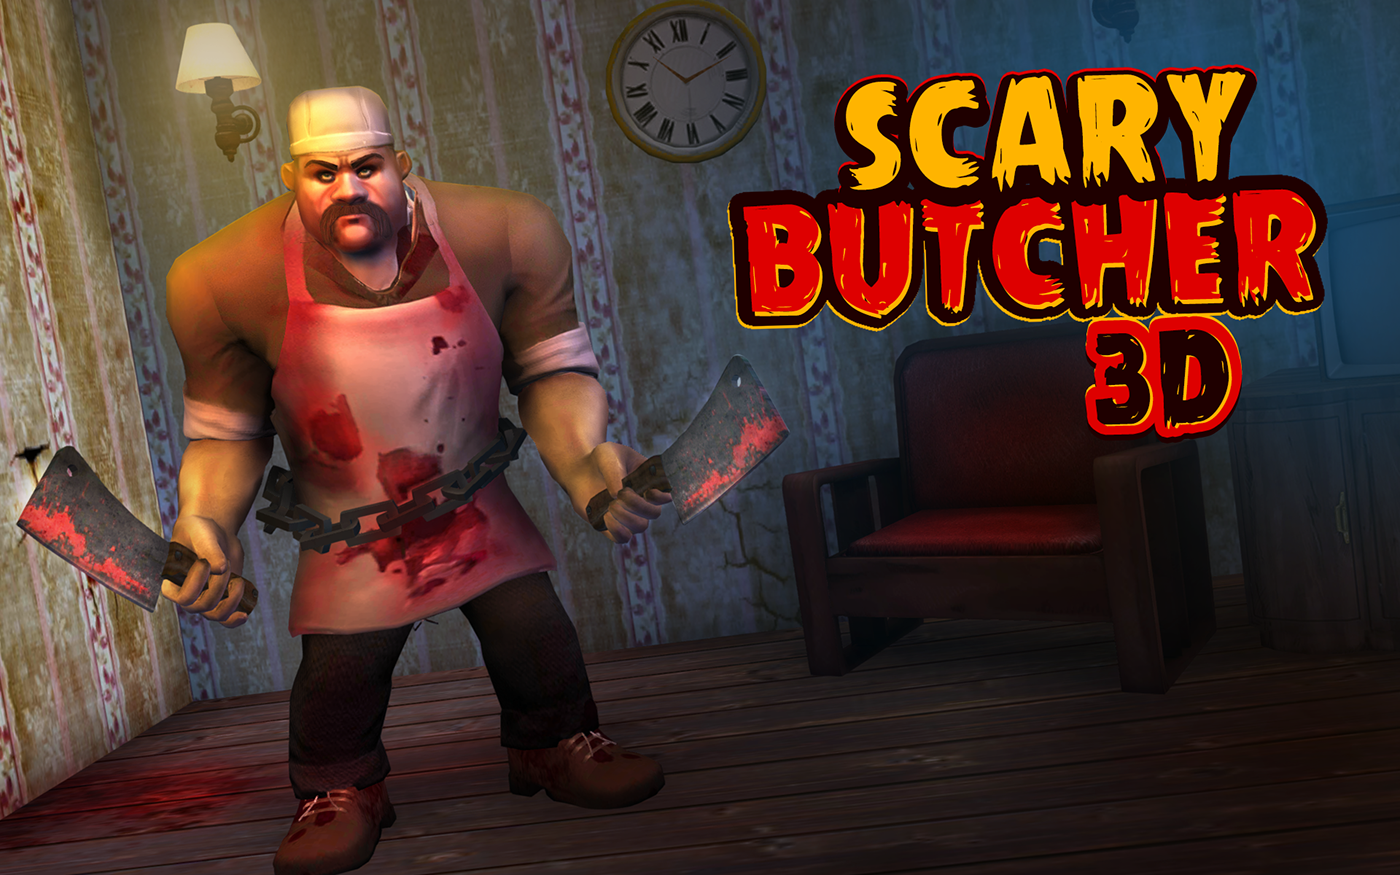 Scary Butcher